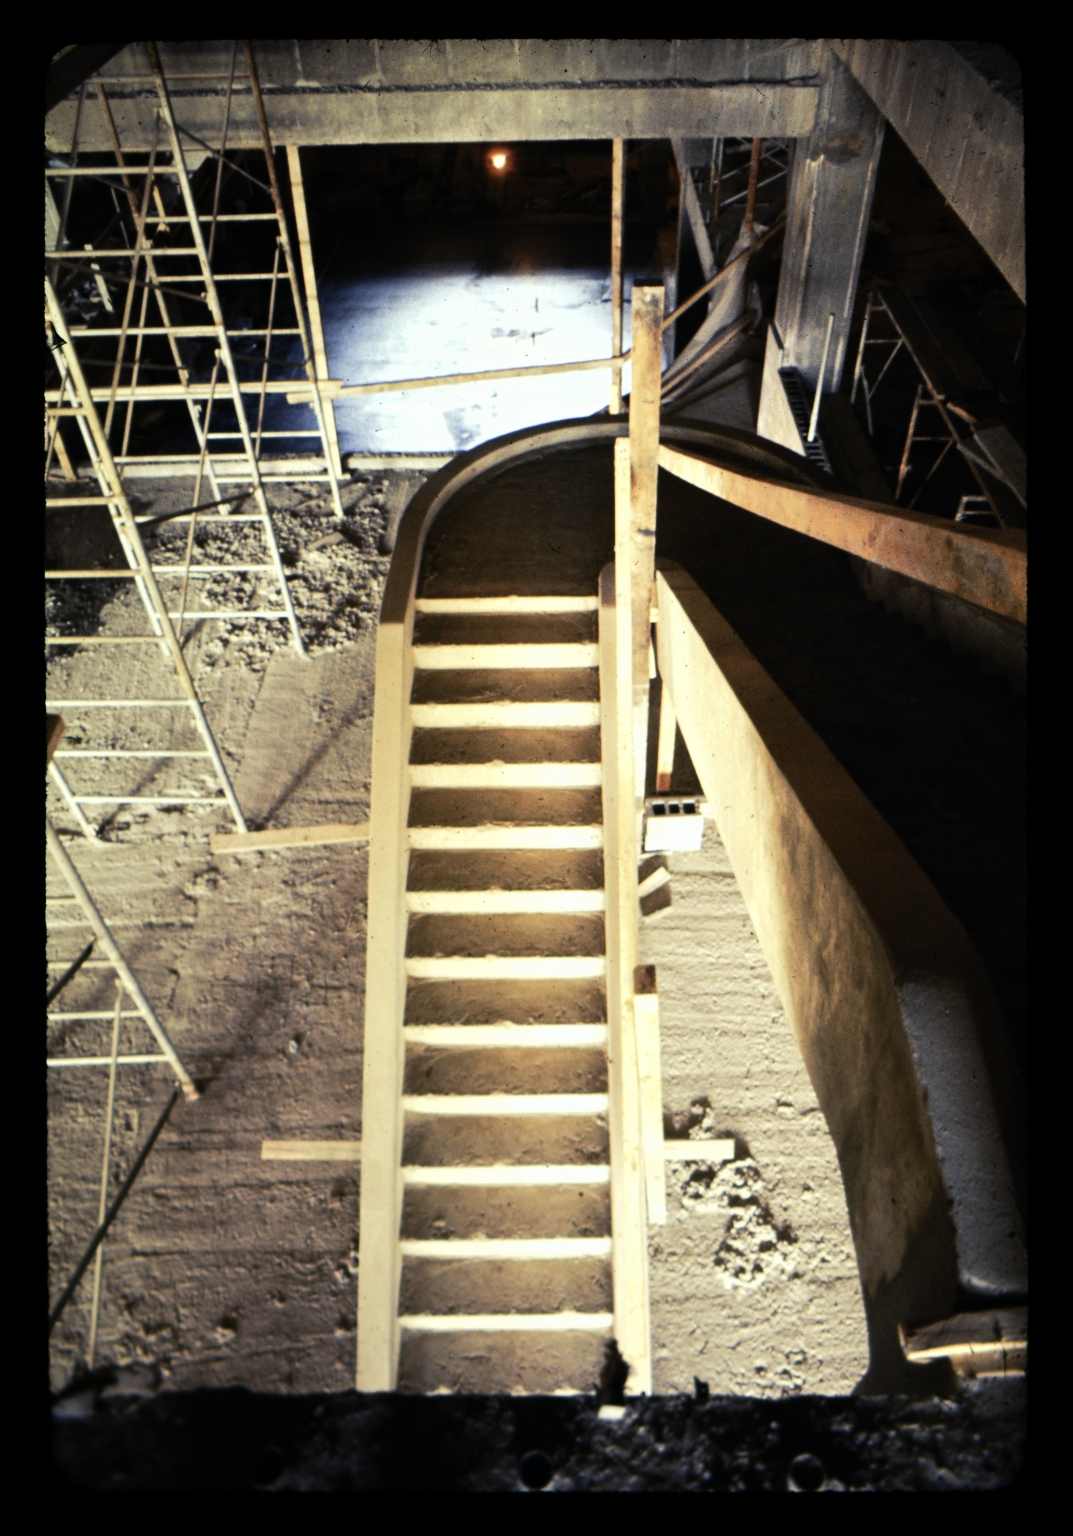 Construction of an interior stairwell